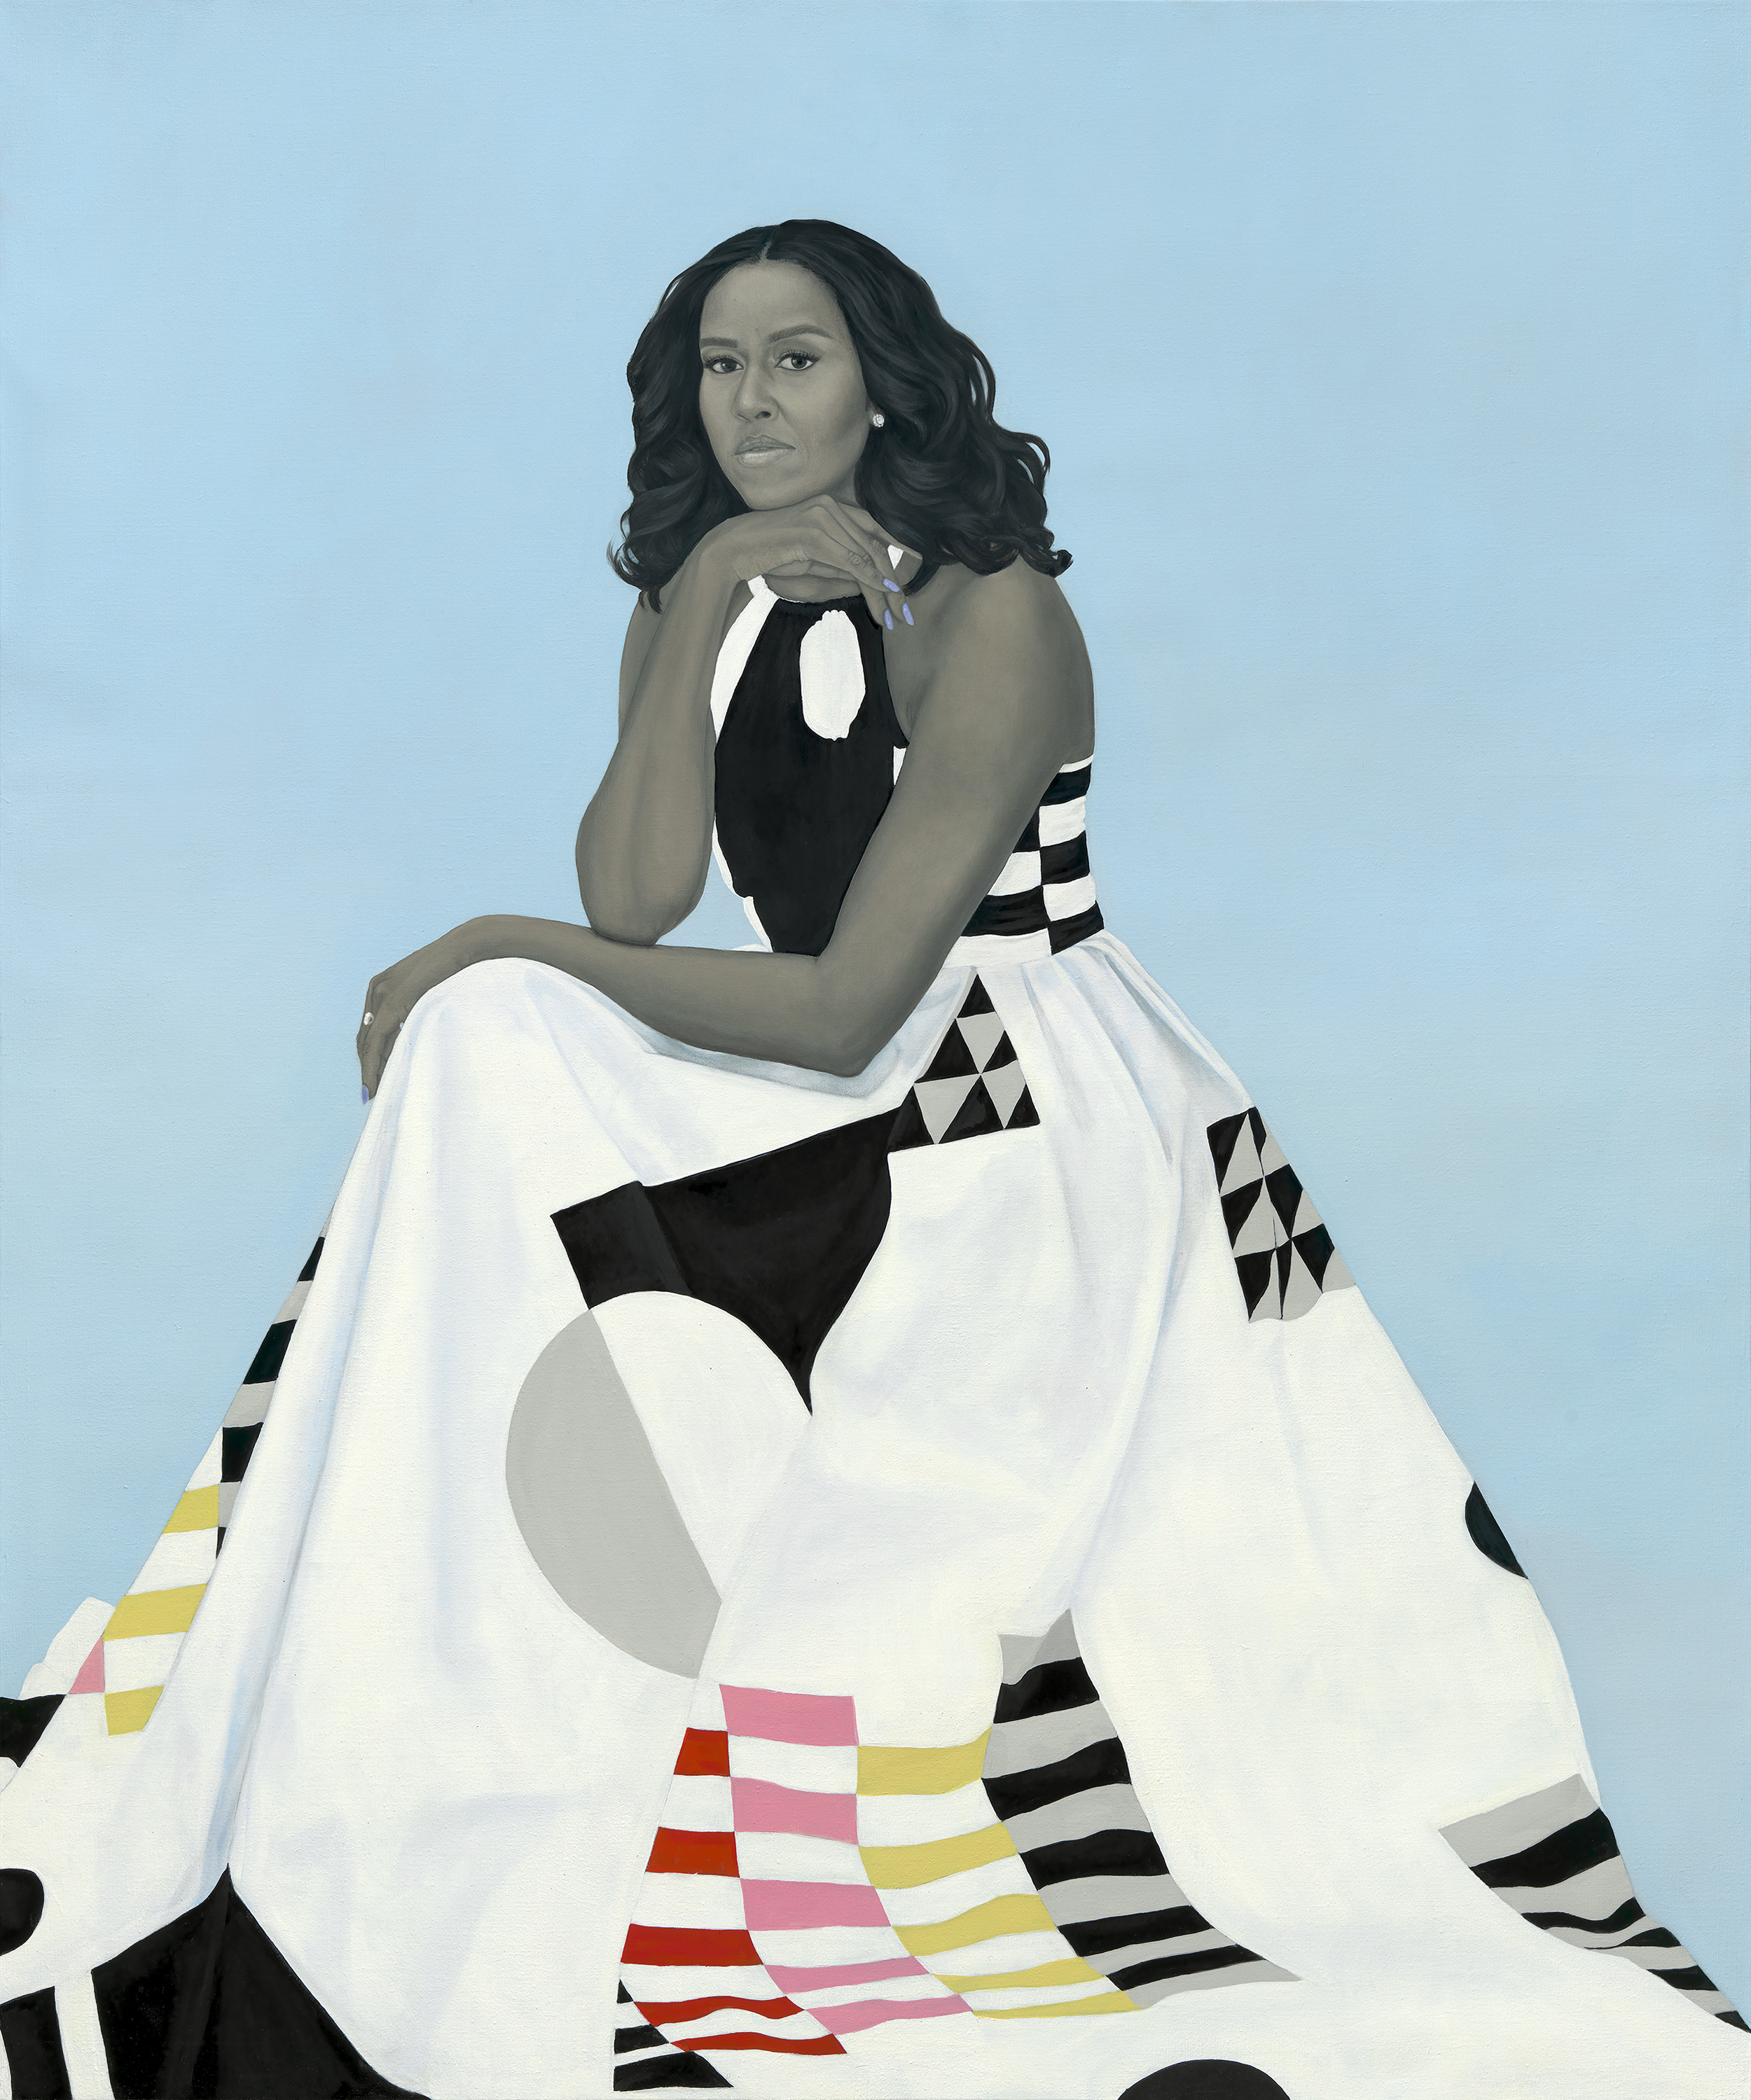 African American Art, Michelle Obama, Black Art, Presidential Portrait, KOLUMN Magazine, KOLUMN, KINDR'D Magazine, KINDR'D